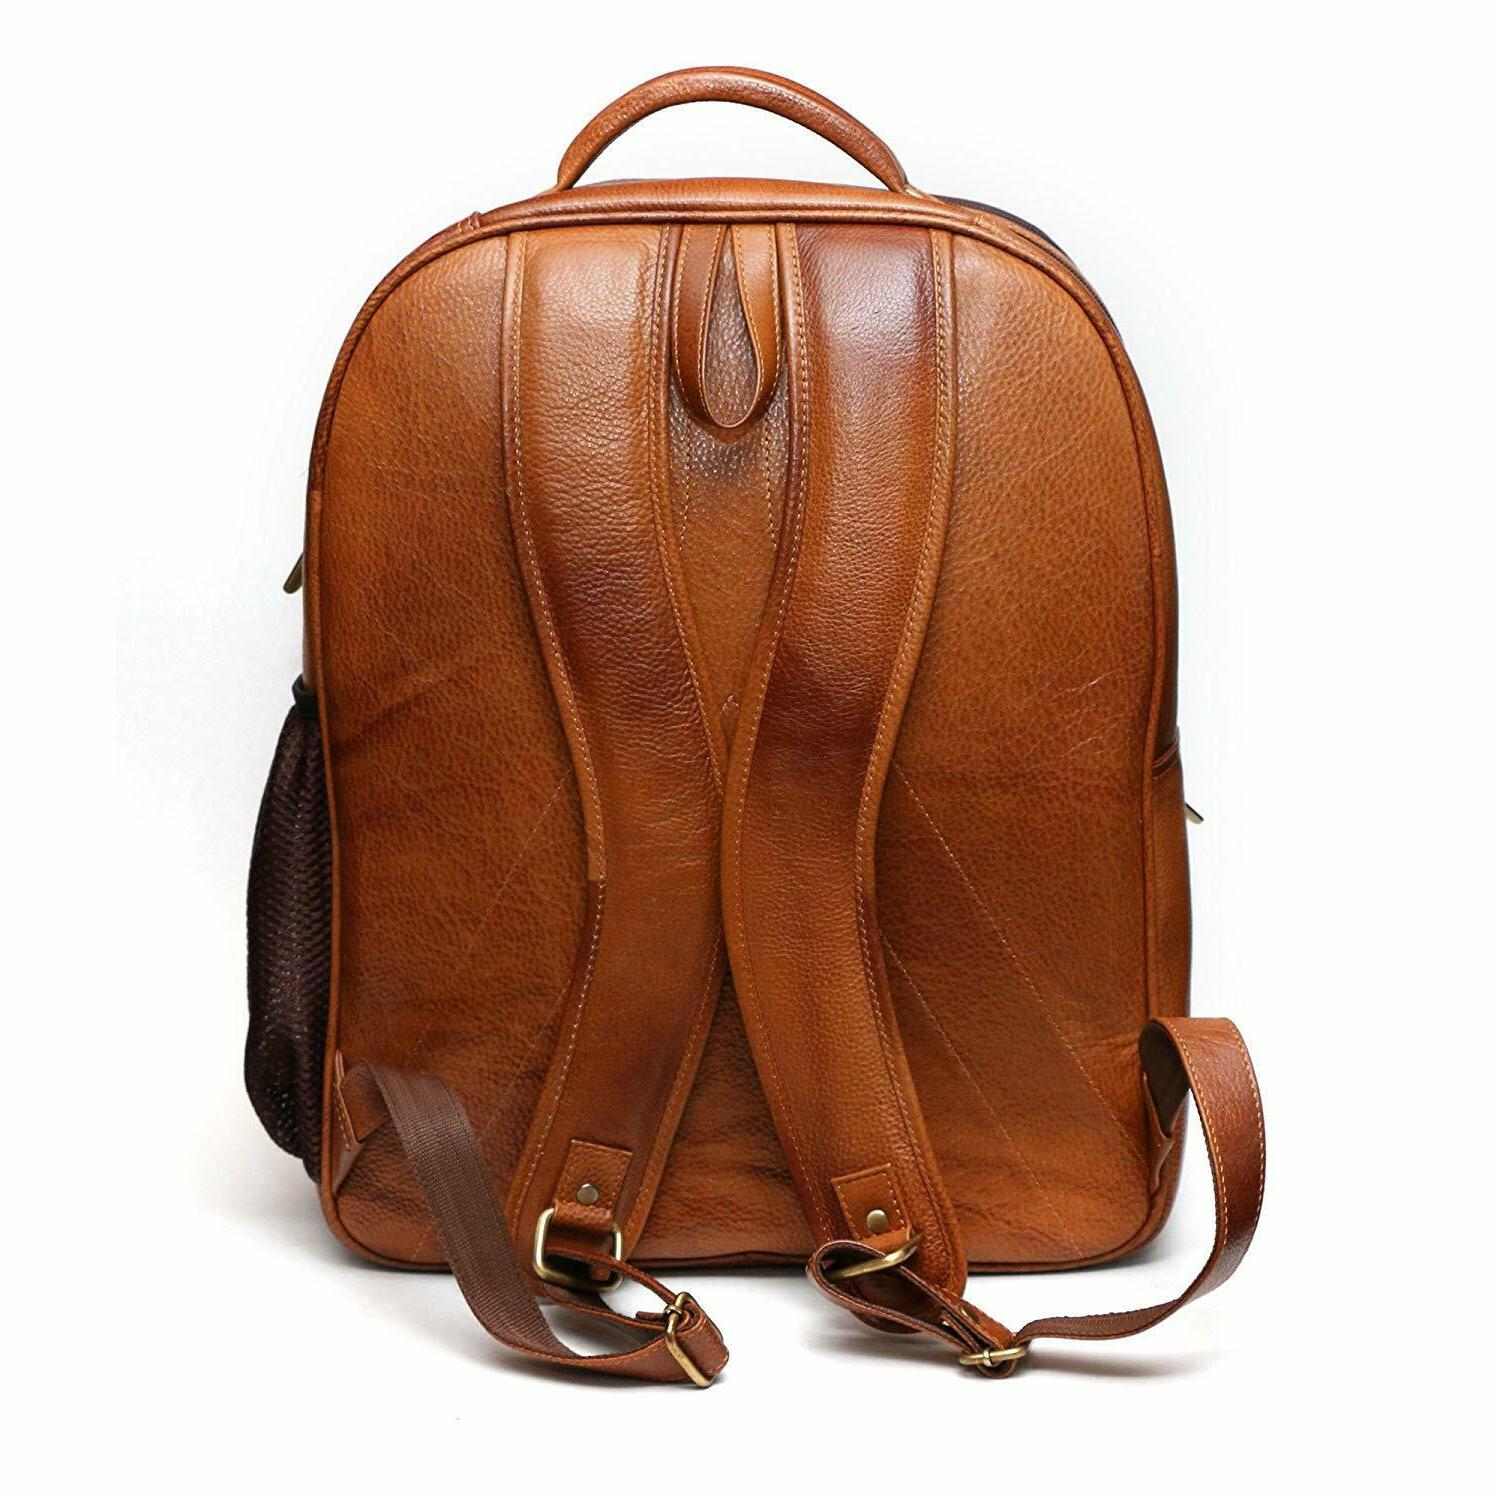 Jackmia Leather Accessories Brown Laptop Bag